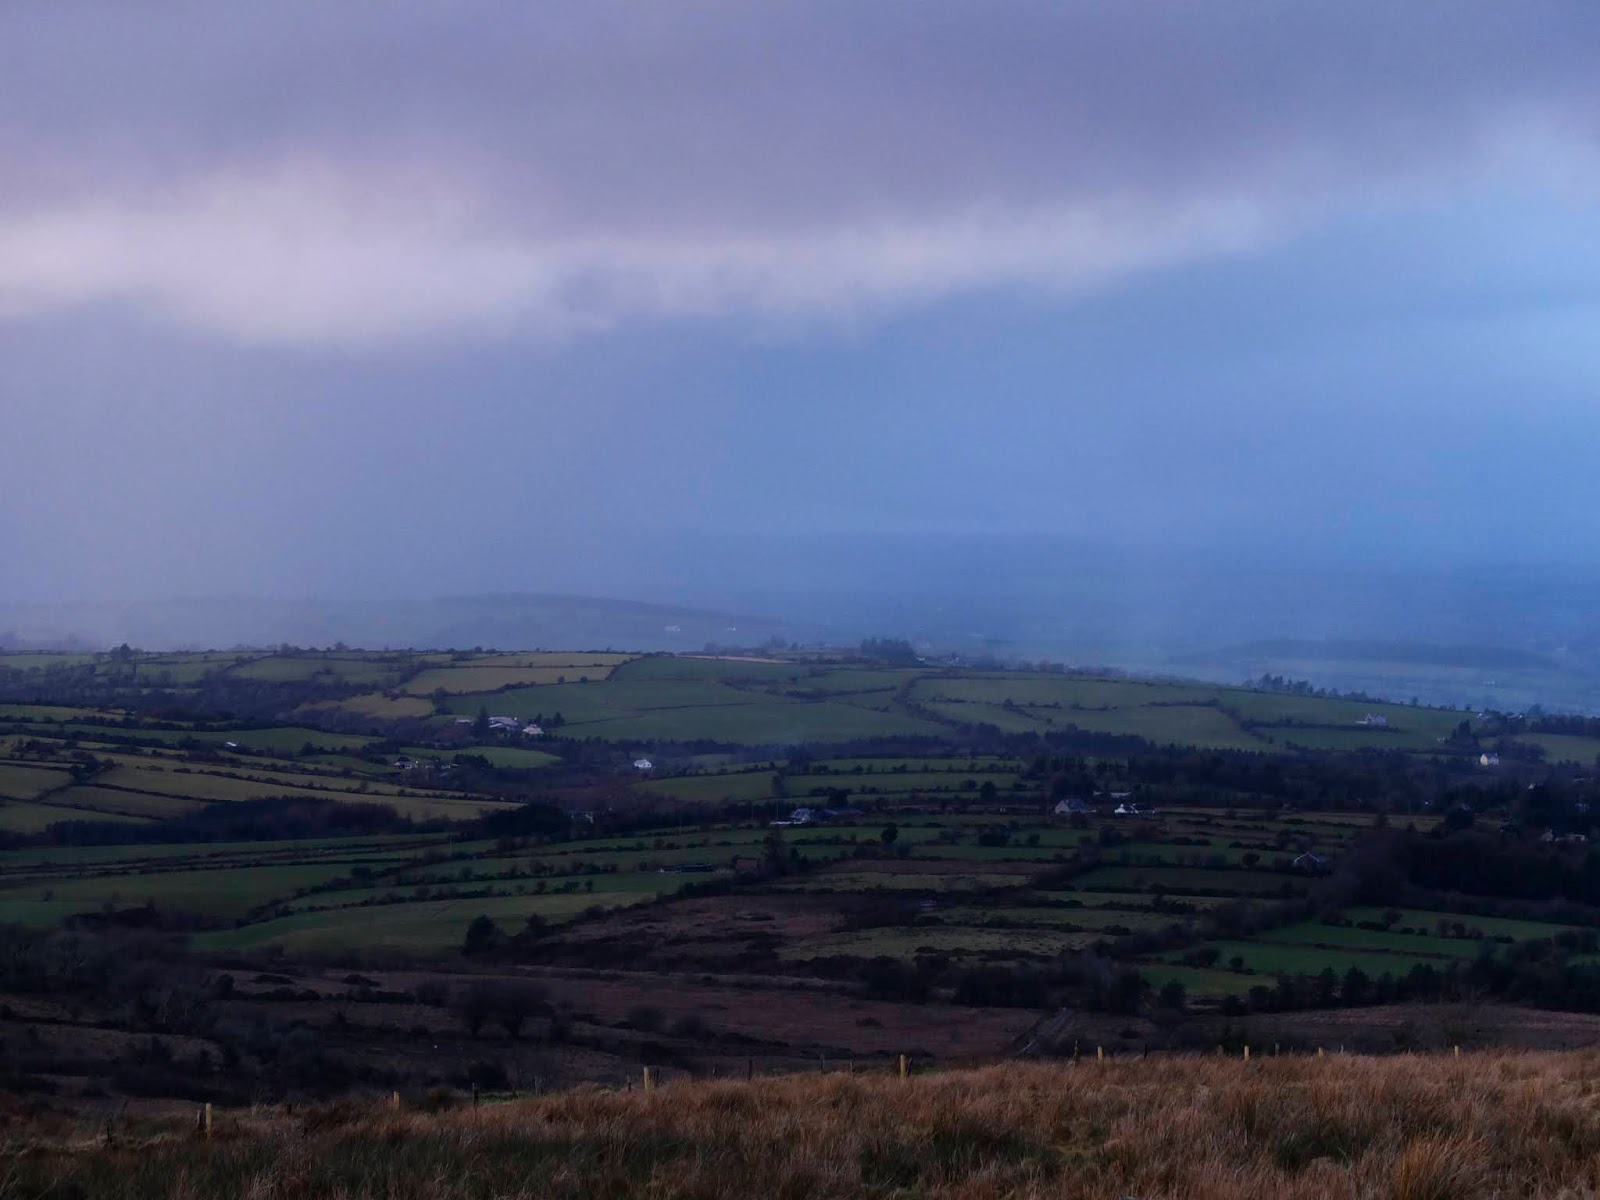 Rain clouds in a valley in North Cork bringing rain.